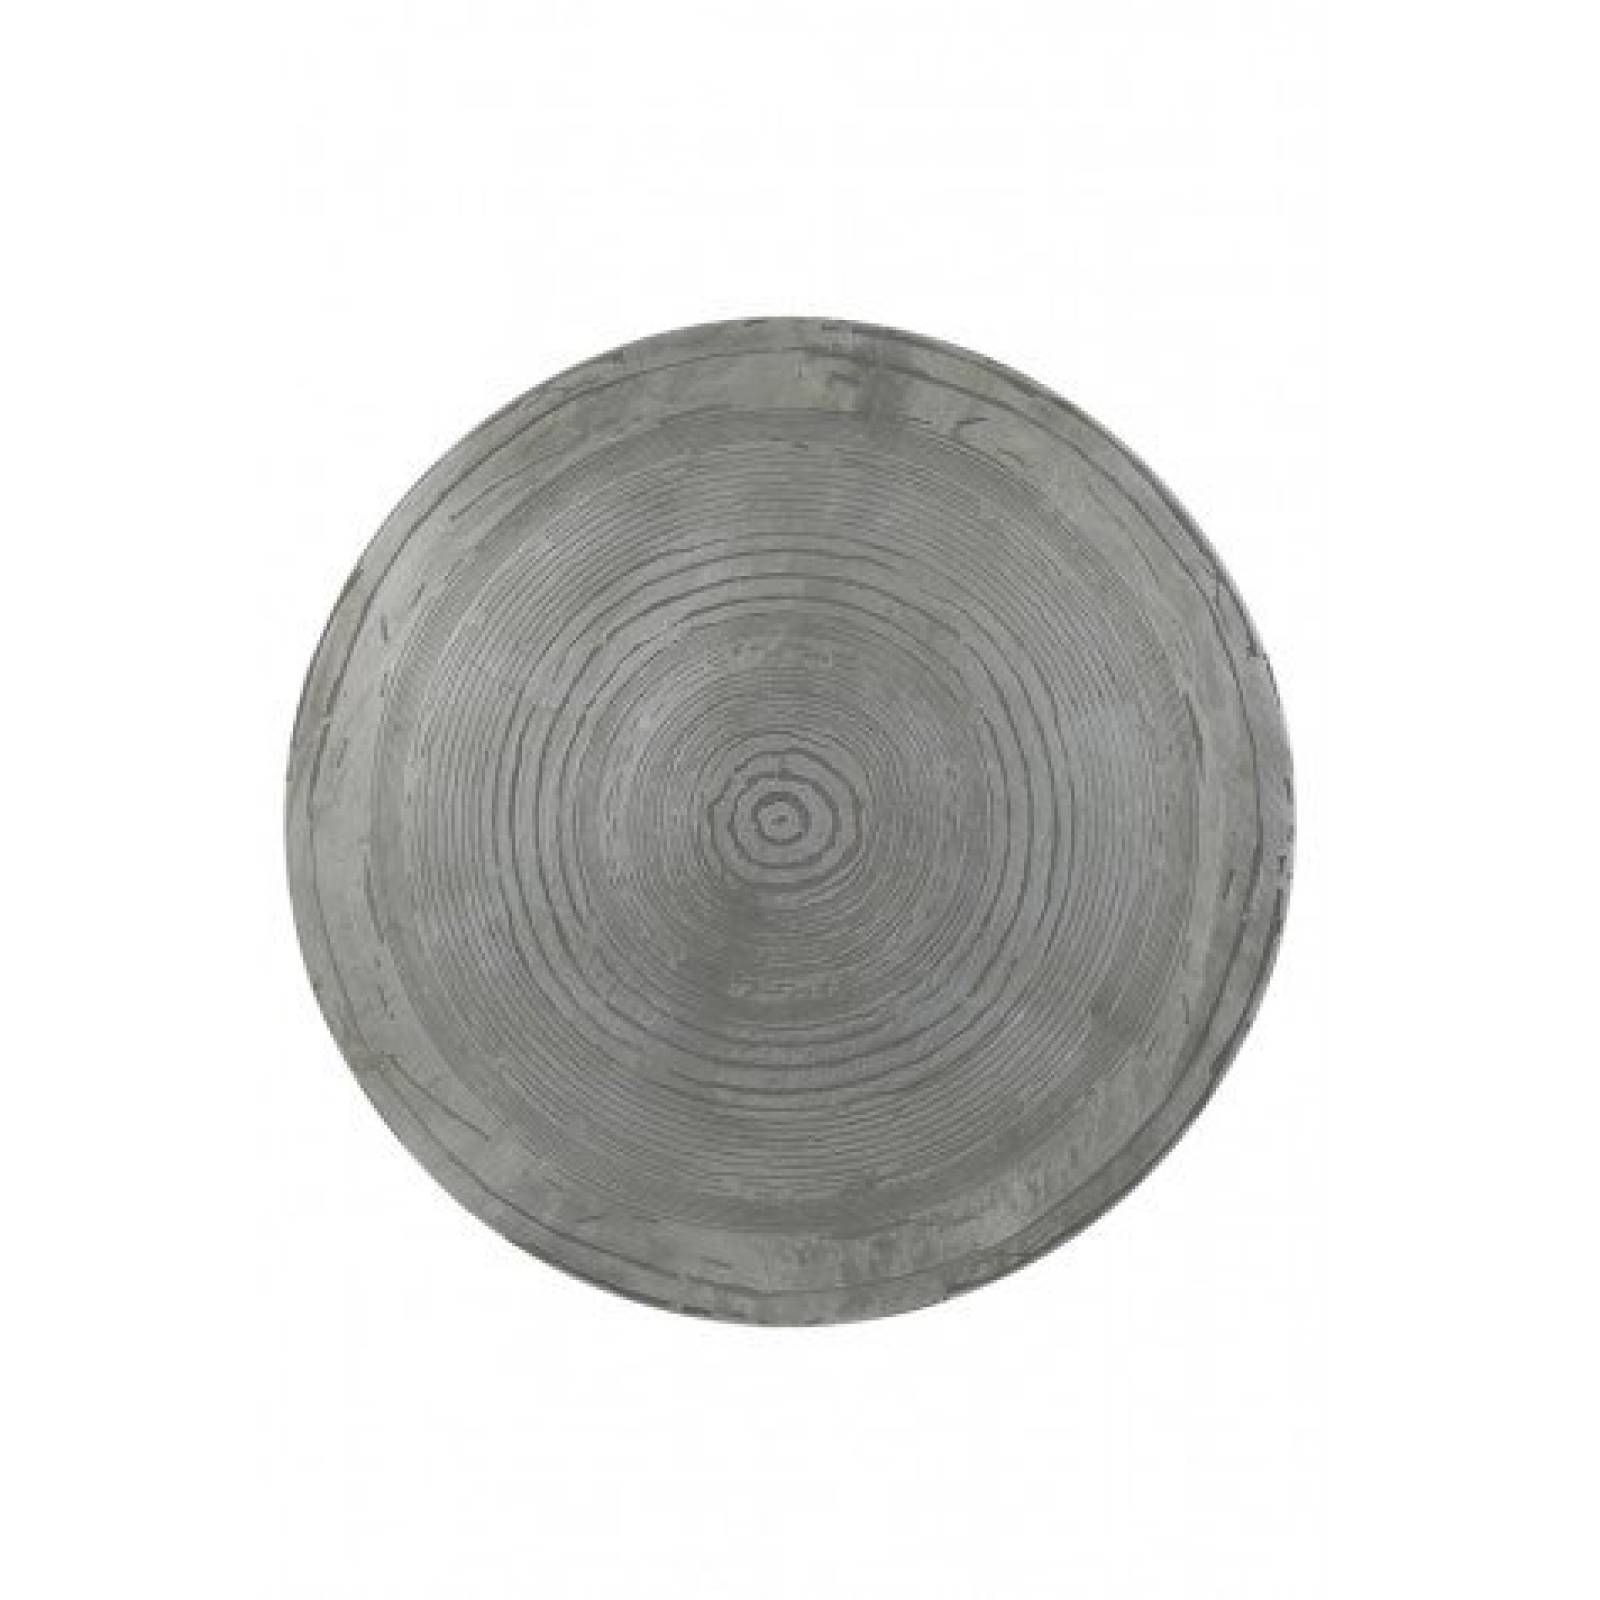 Trunk Circular Side Table In Matt Silver And Black 50x39 thumbnails